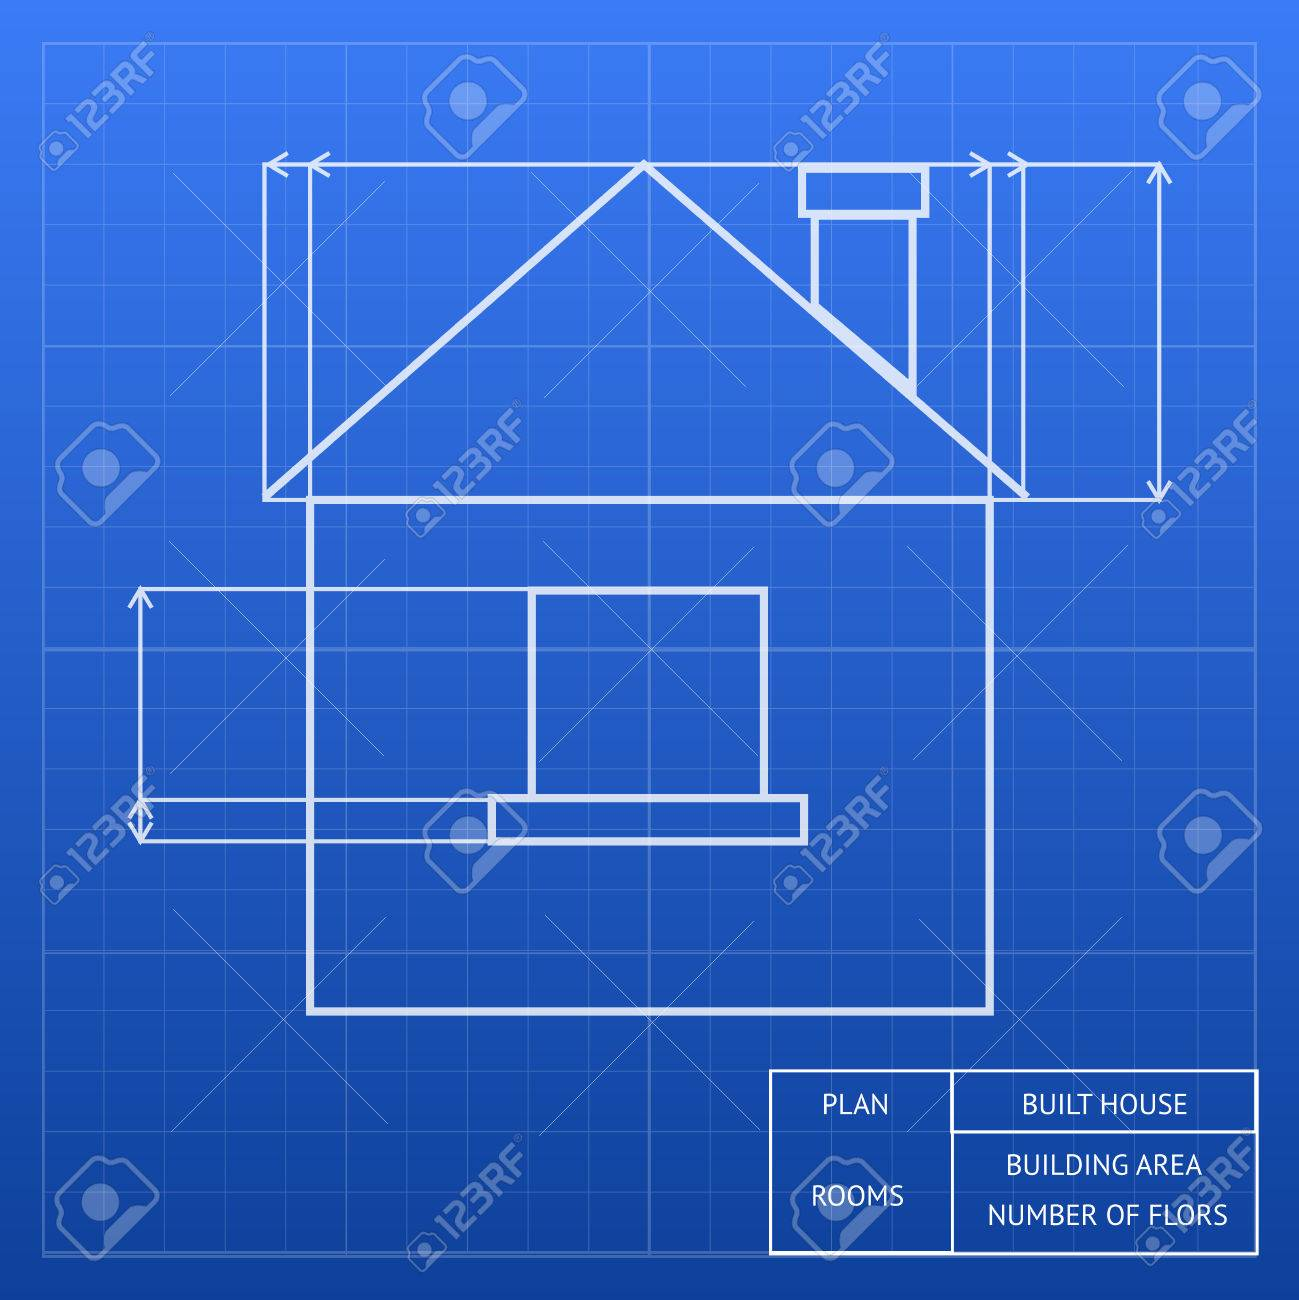 Architectural blueprint of a house design showing an exterior architectural blueprint of a house design showing an exterior elevation with window and roof heights and malvernweather Images